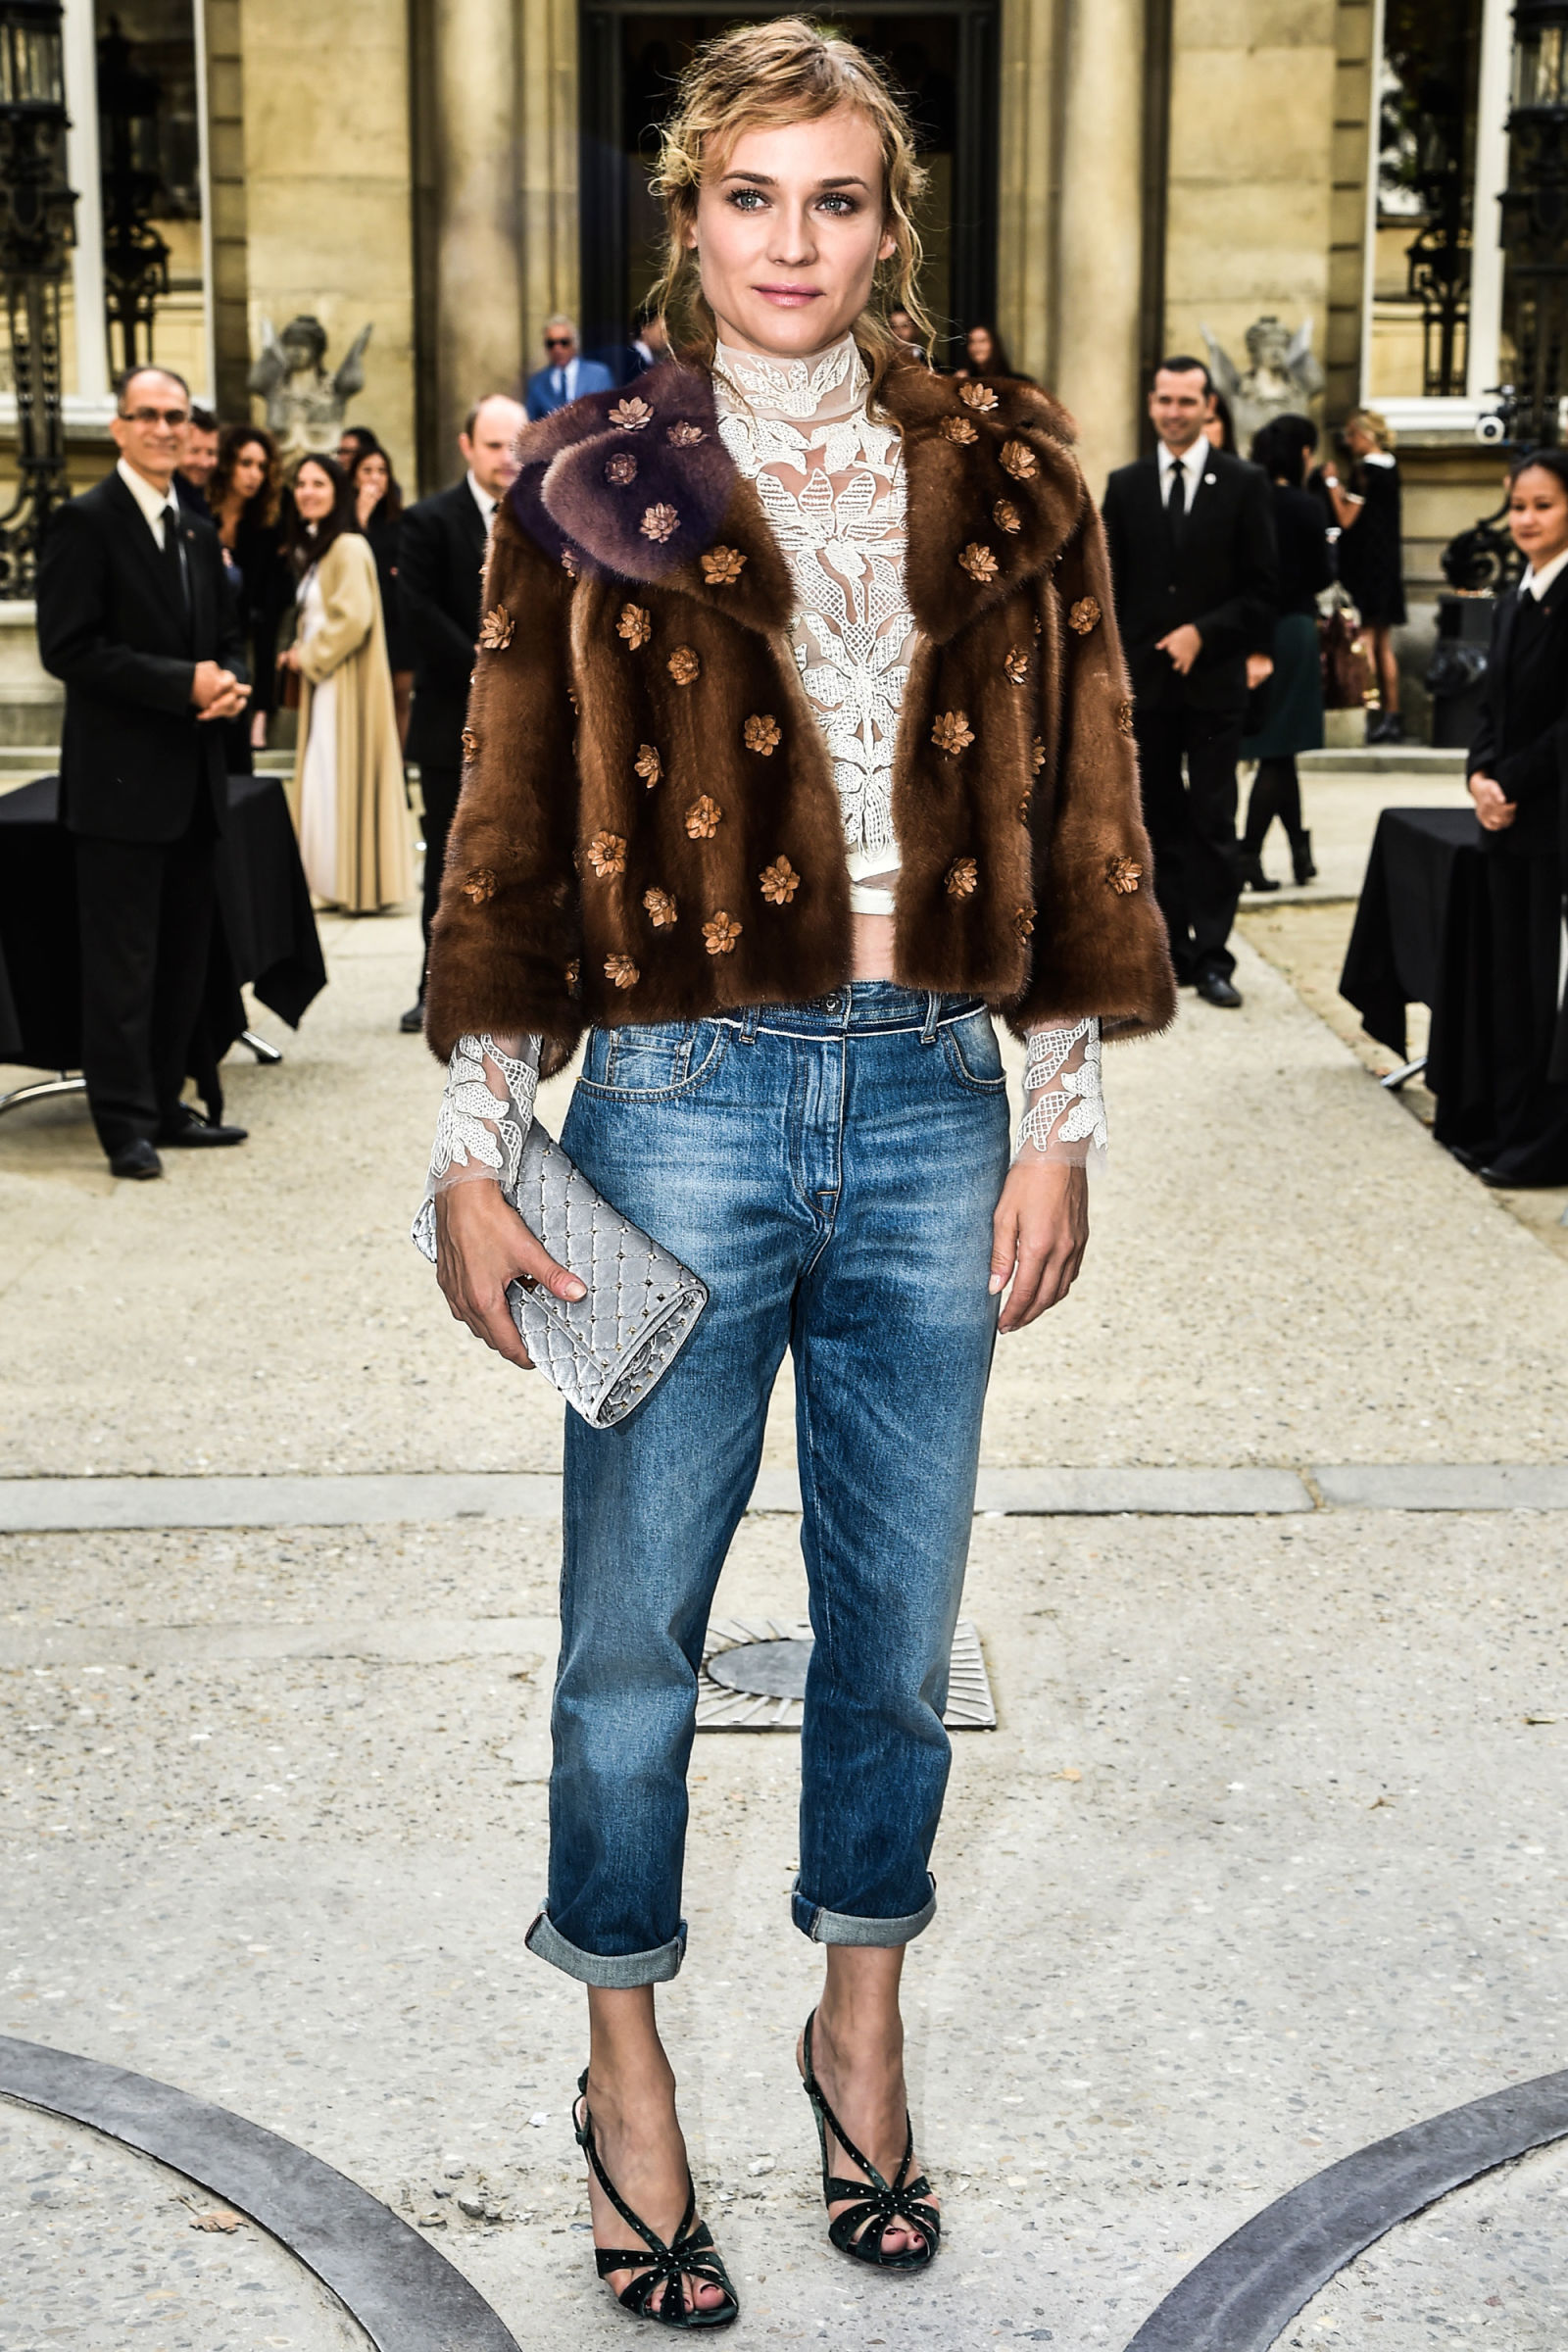 Get a Fresh Batch of Winter Styling Ideas From J Crew's Latest Looks forecasting